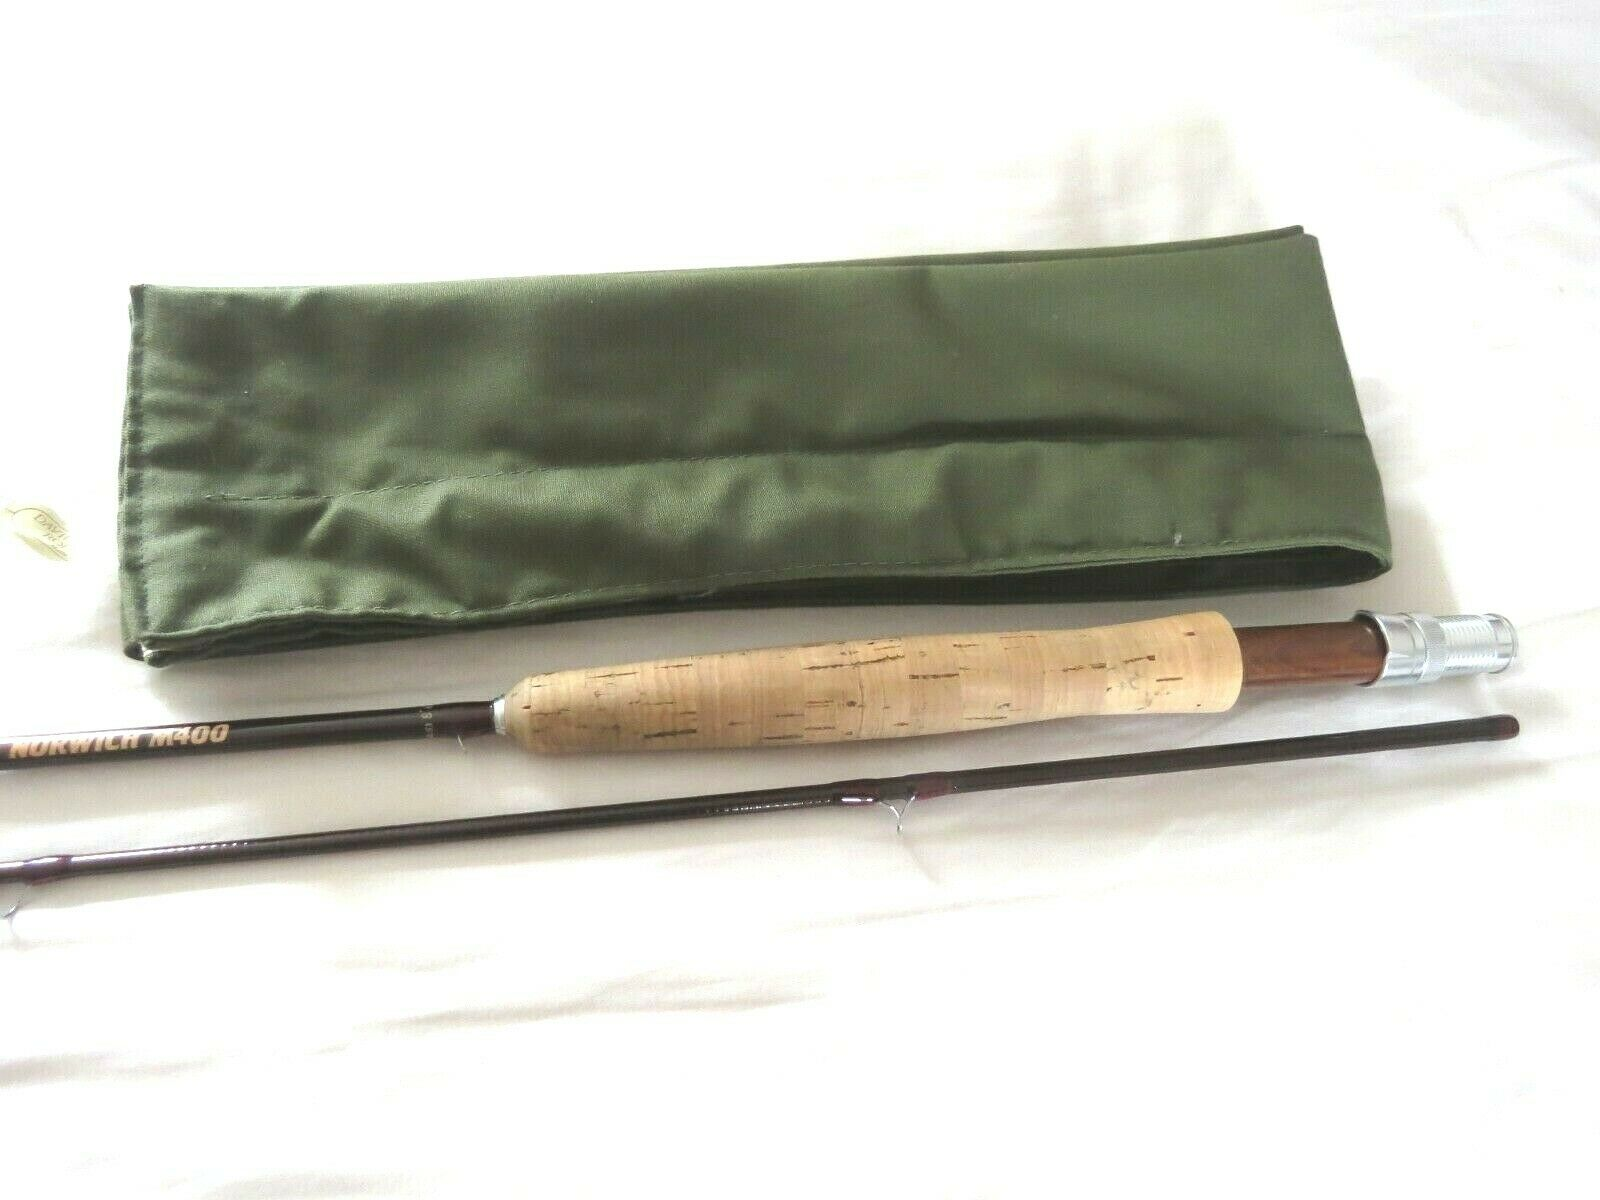 DAVID NORWICH  M400   8FT 6   6 WEIGHT TWO SECTION FLY ROD INITS BAG EXCELLENT